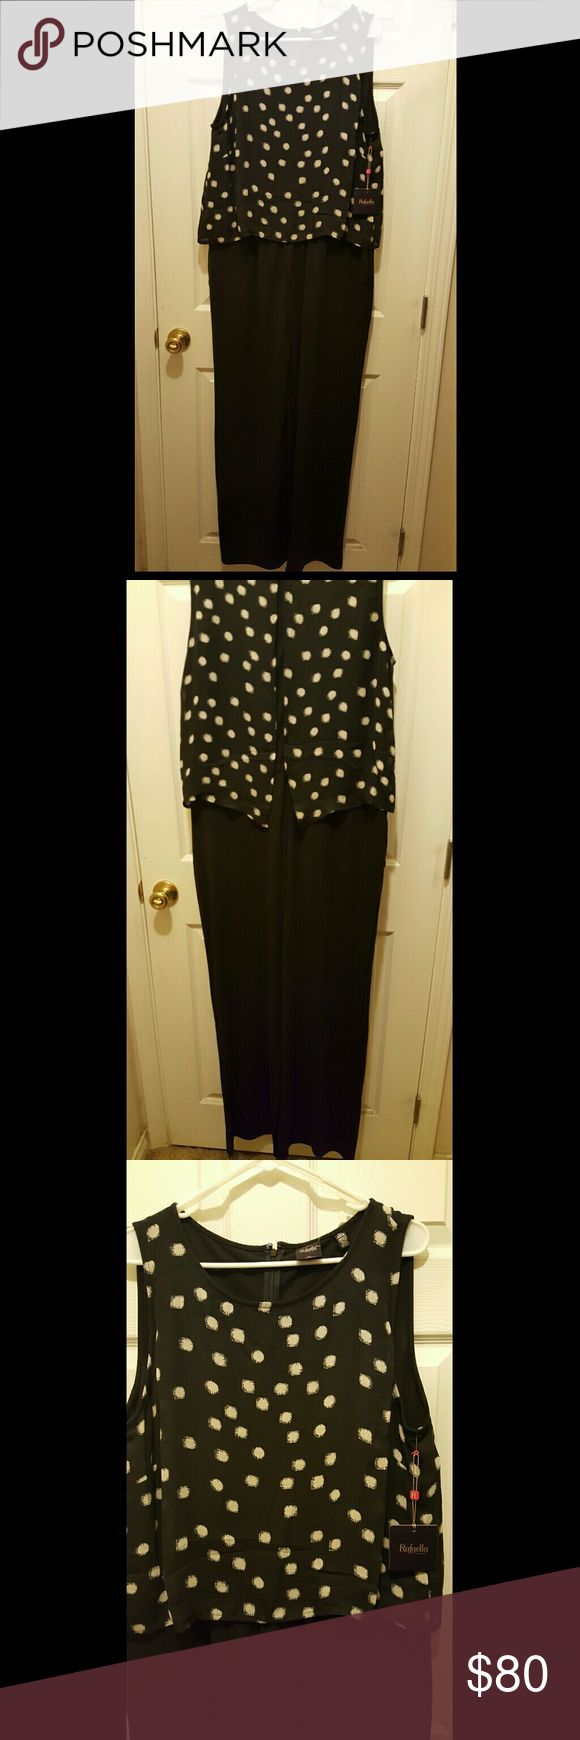 NWT Black and White Polka-dot Jumpsuit Black and white Polka-dot Jumpsuit with pockets. Rafaella Pants Jumpsuits & Rompers